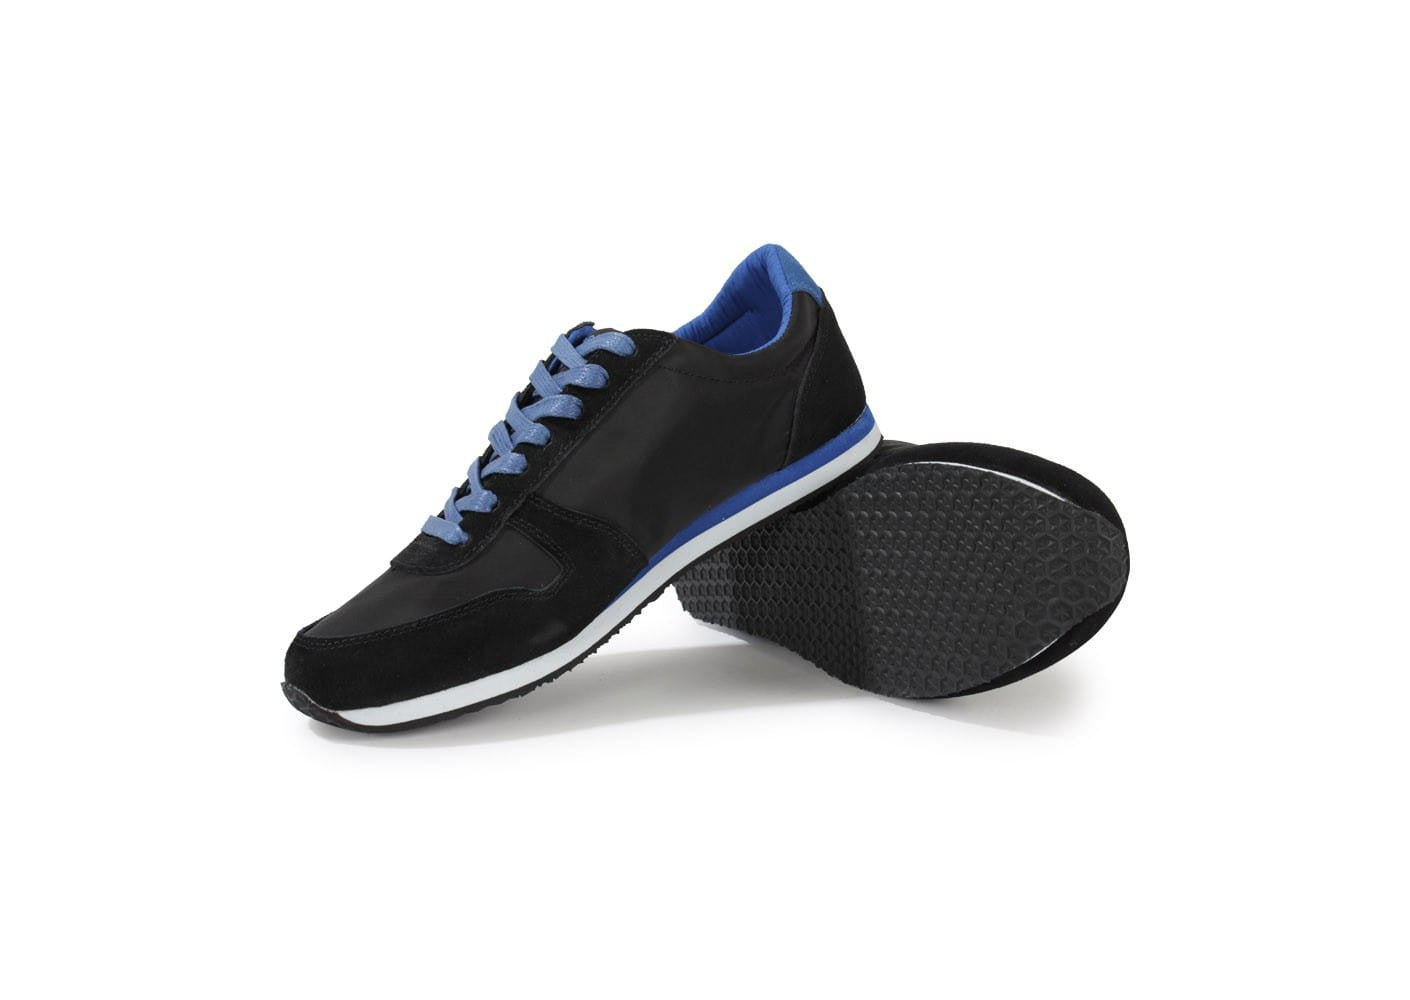 Shoes Men Casual  | Black + Blue